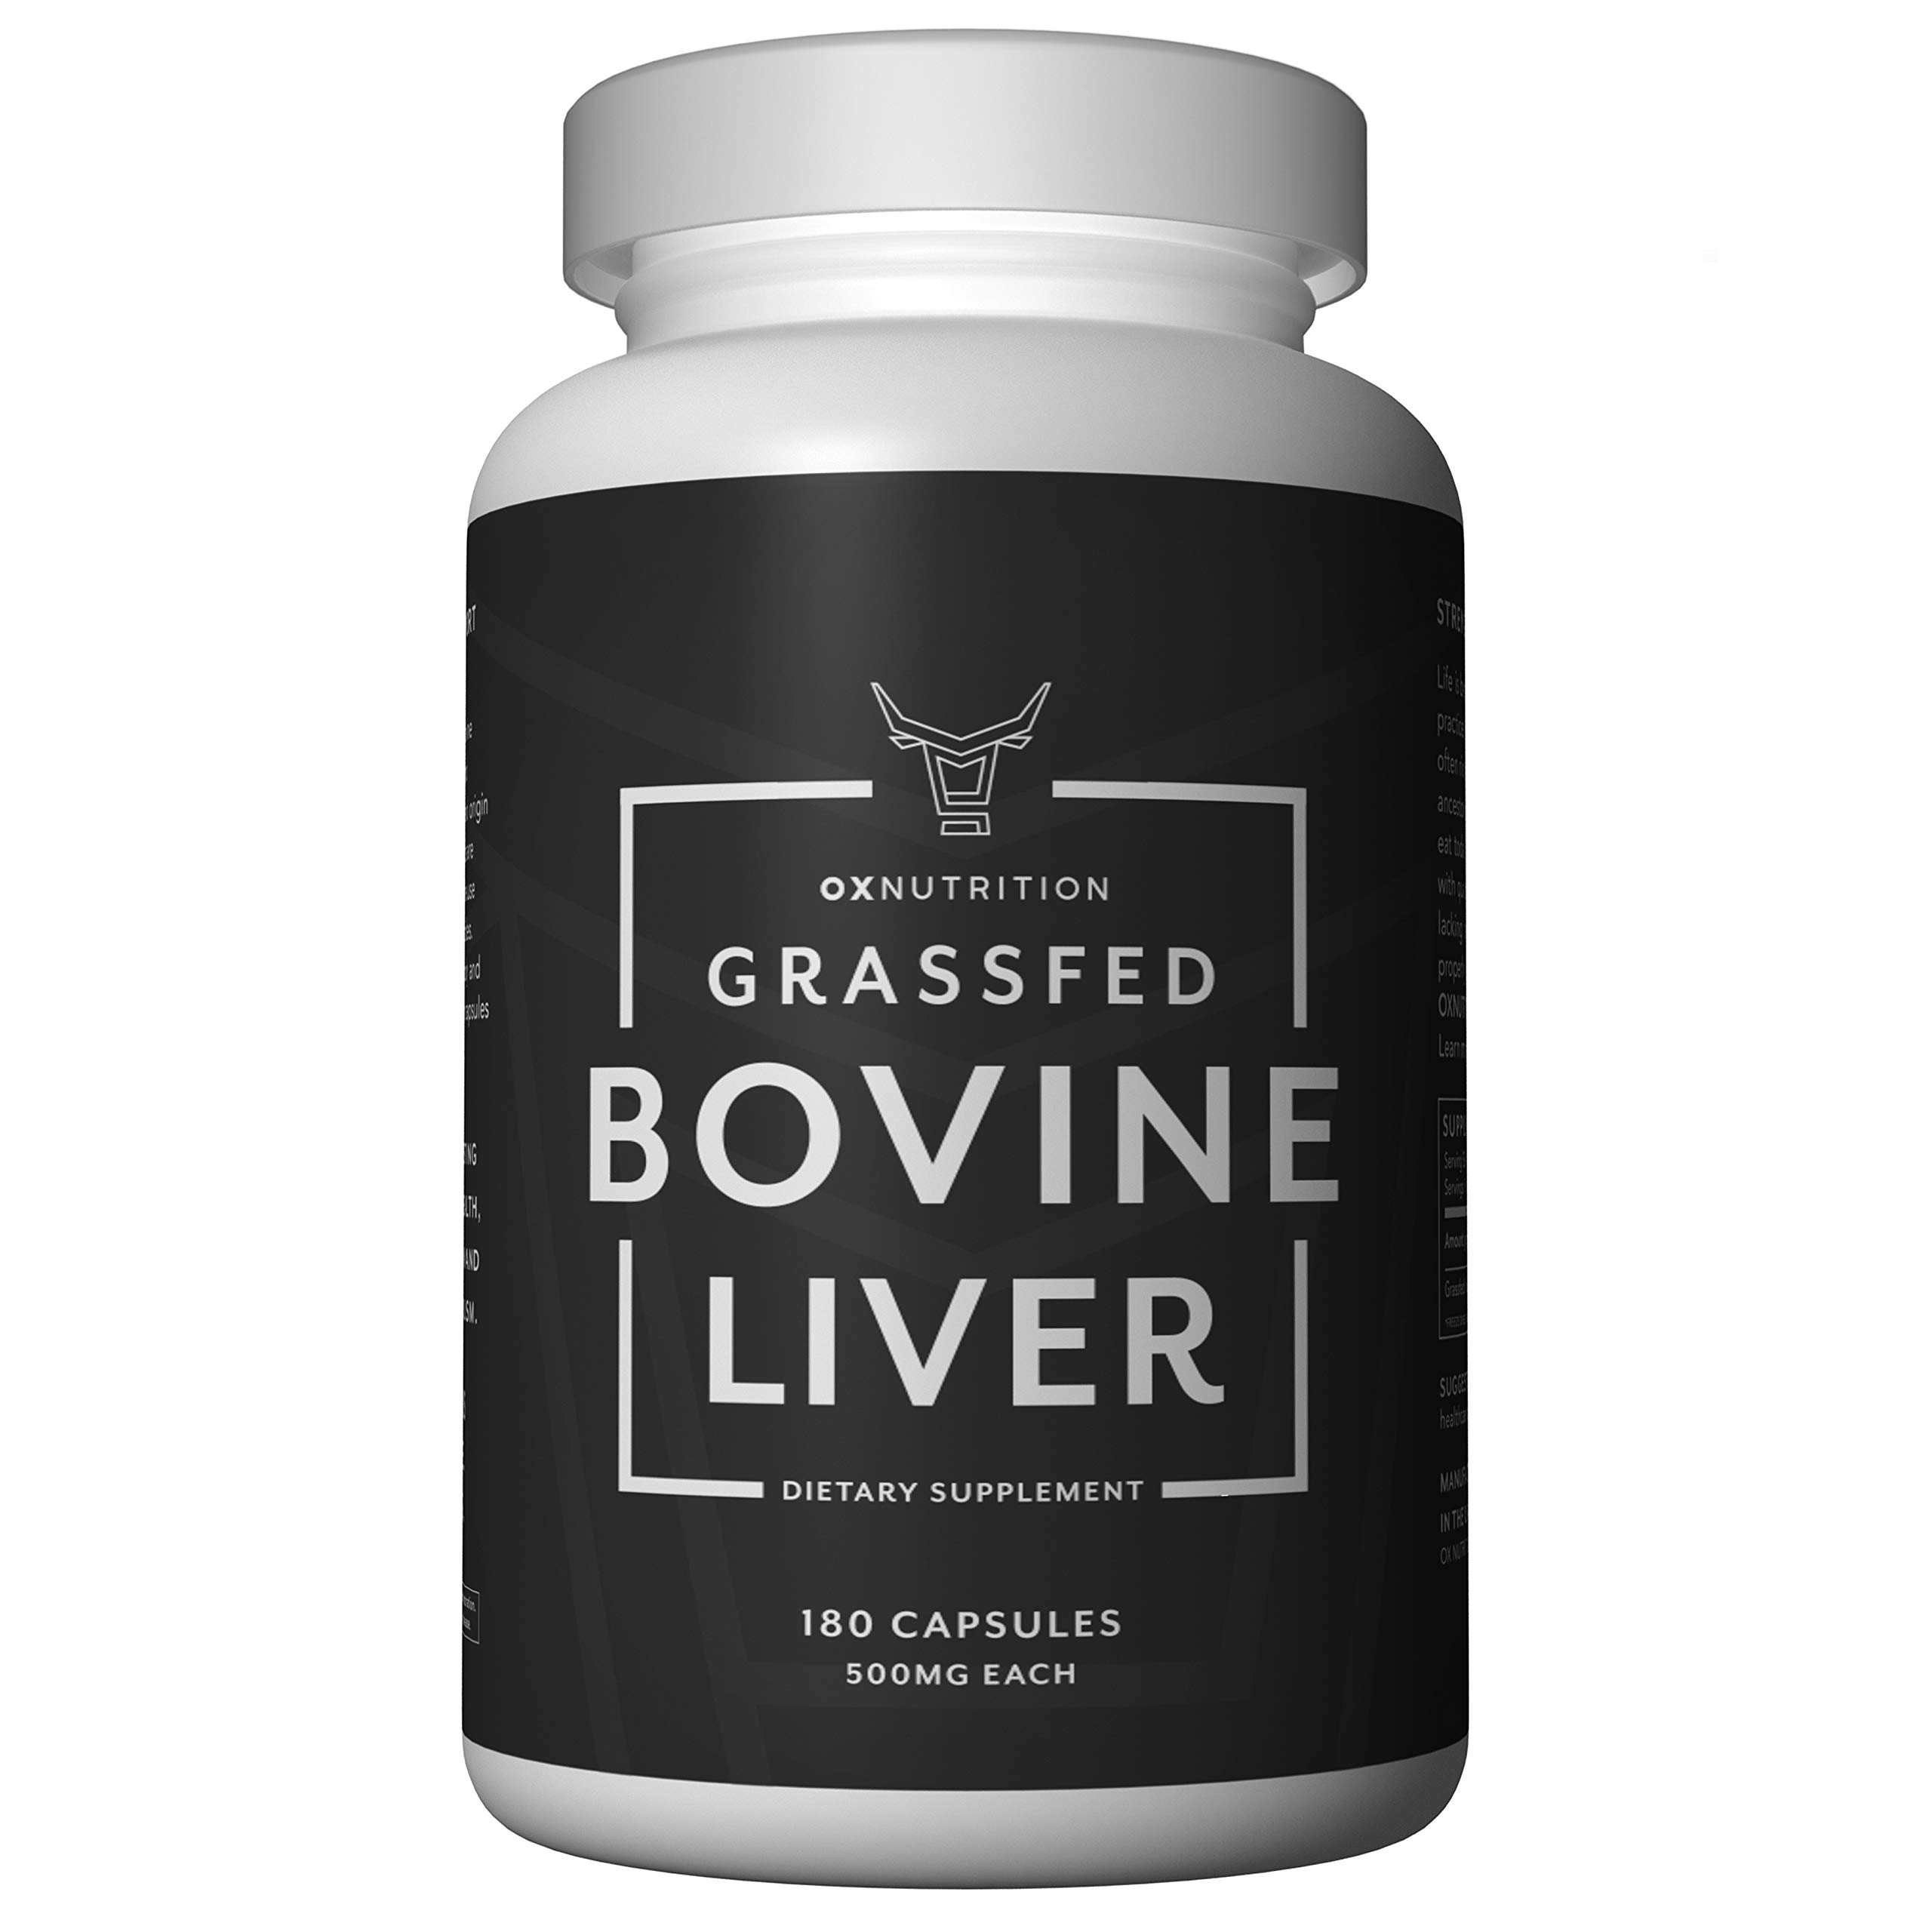 OXNUTRITION Grassfed Beef Liver Capsules (Desiccated)   Natural Liver and Iron Supplement   High in B12 for Energy, Thyroid Support   180 Capsules   Superfood Packed with Many Vitamins and Nutrients by OXNUTRITION